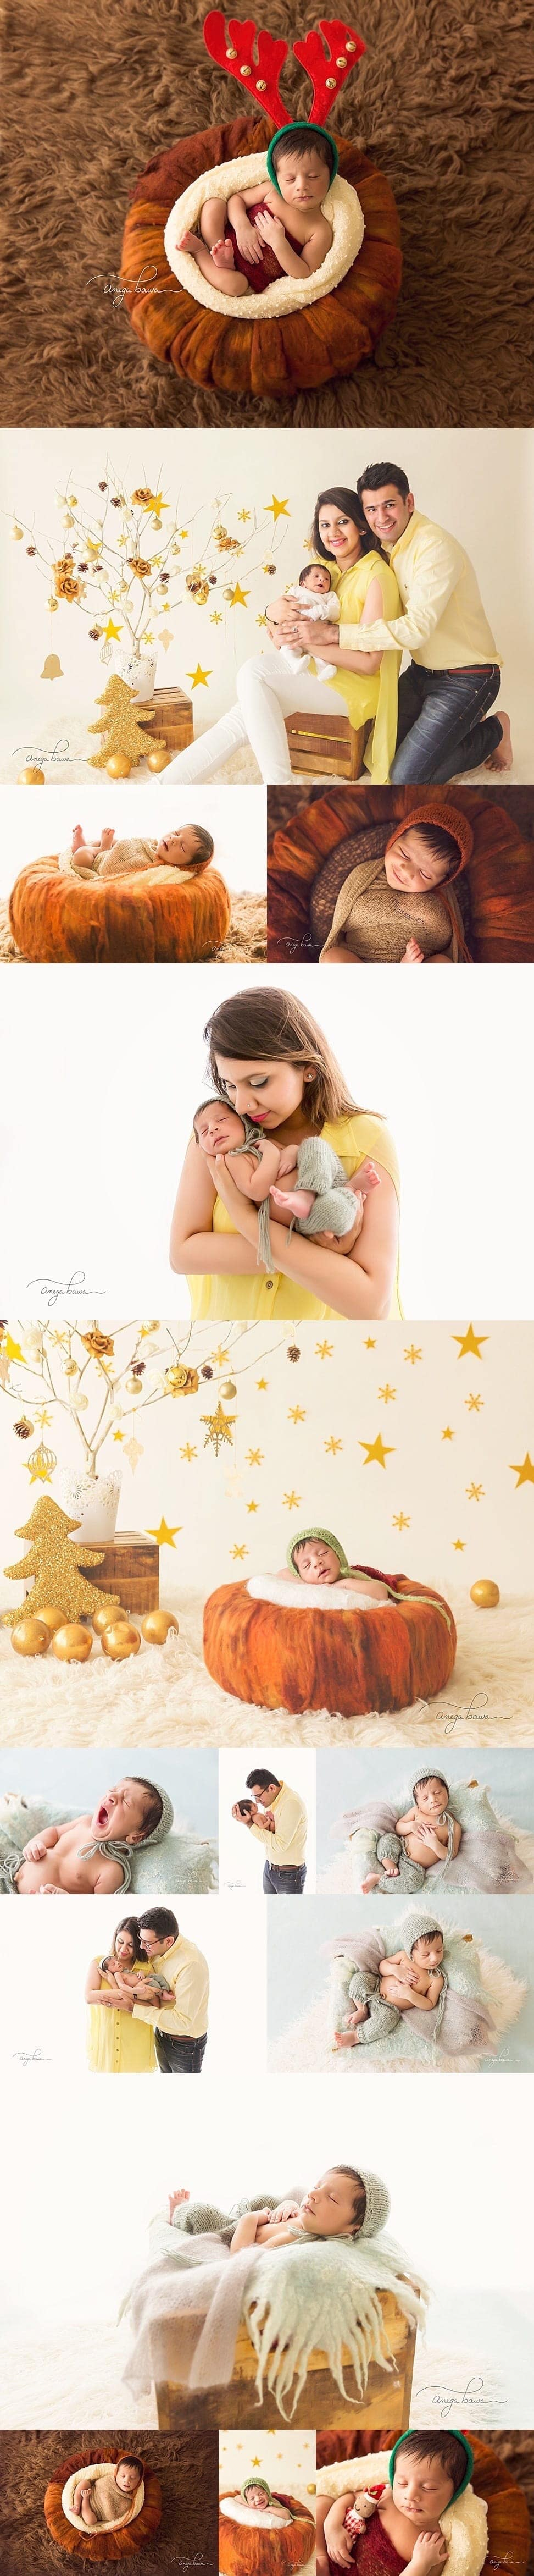 newborn_session_083-11-days-boy_infant_photoshoot_delhi_noida_gurgaon